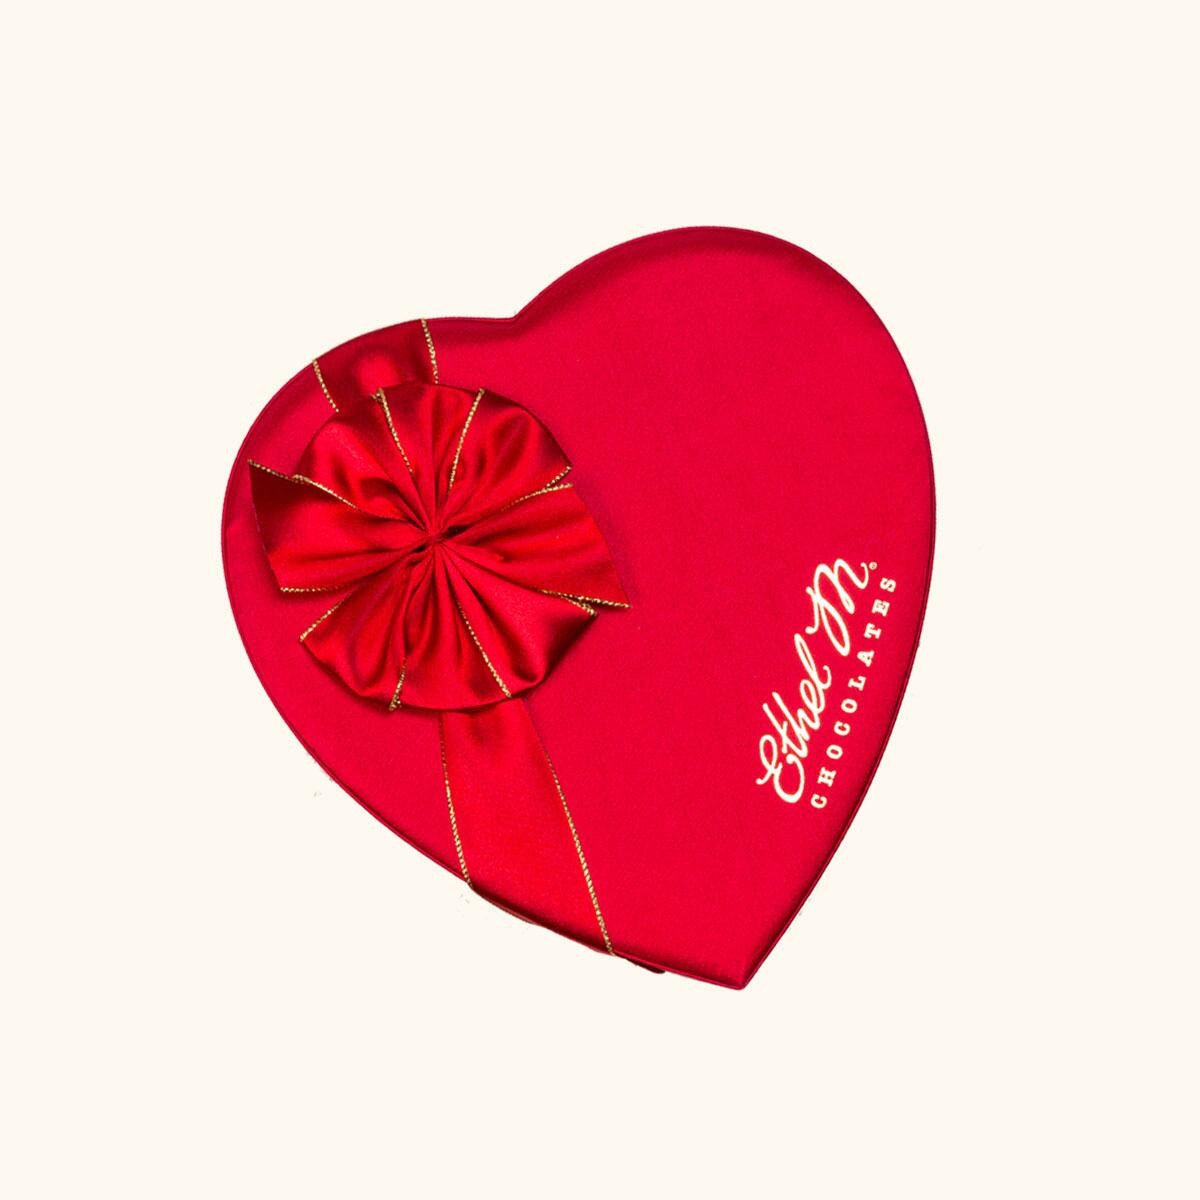 Design Your Own MEDIUM HEART Chocolate Assortment, 15-25 Total Pieces